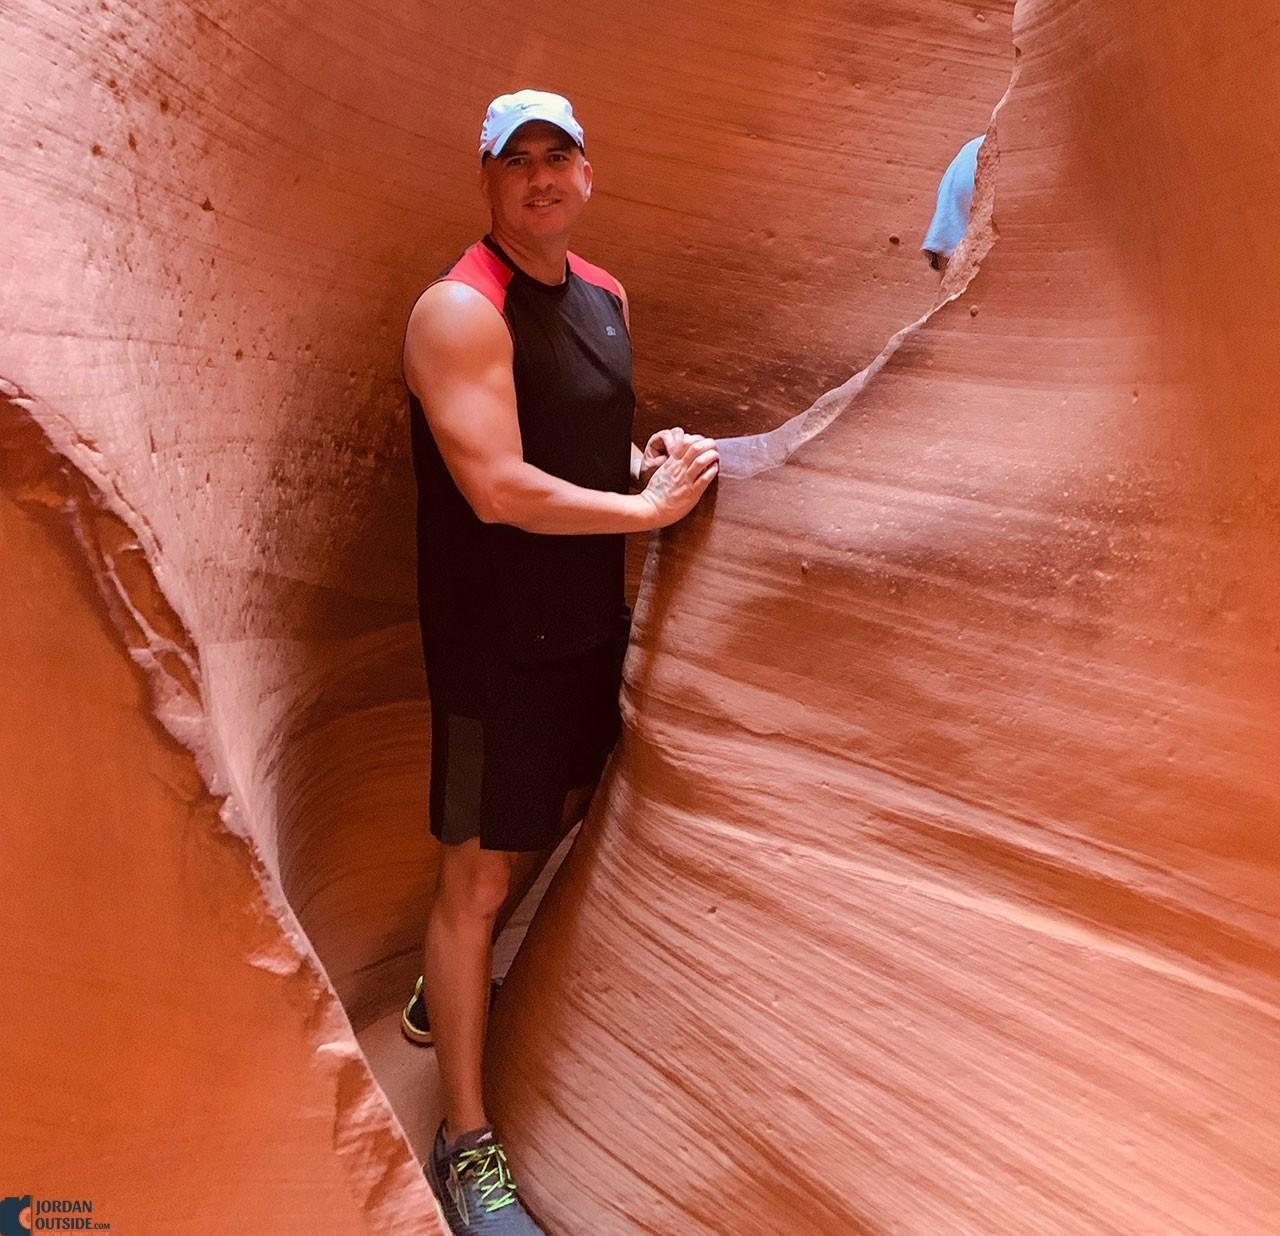 Tight squeeze at Lower Antelope Canyon